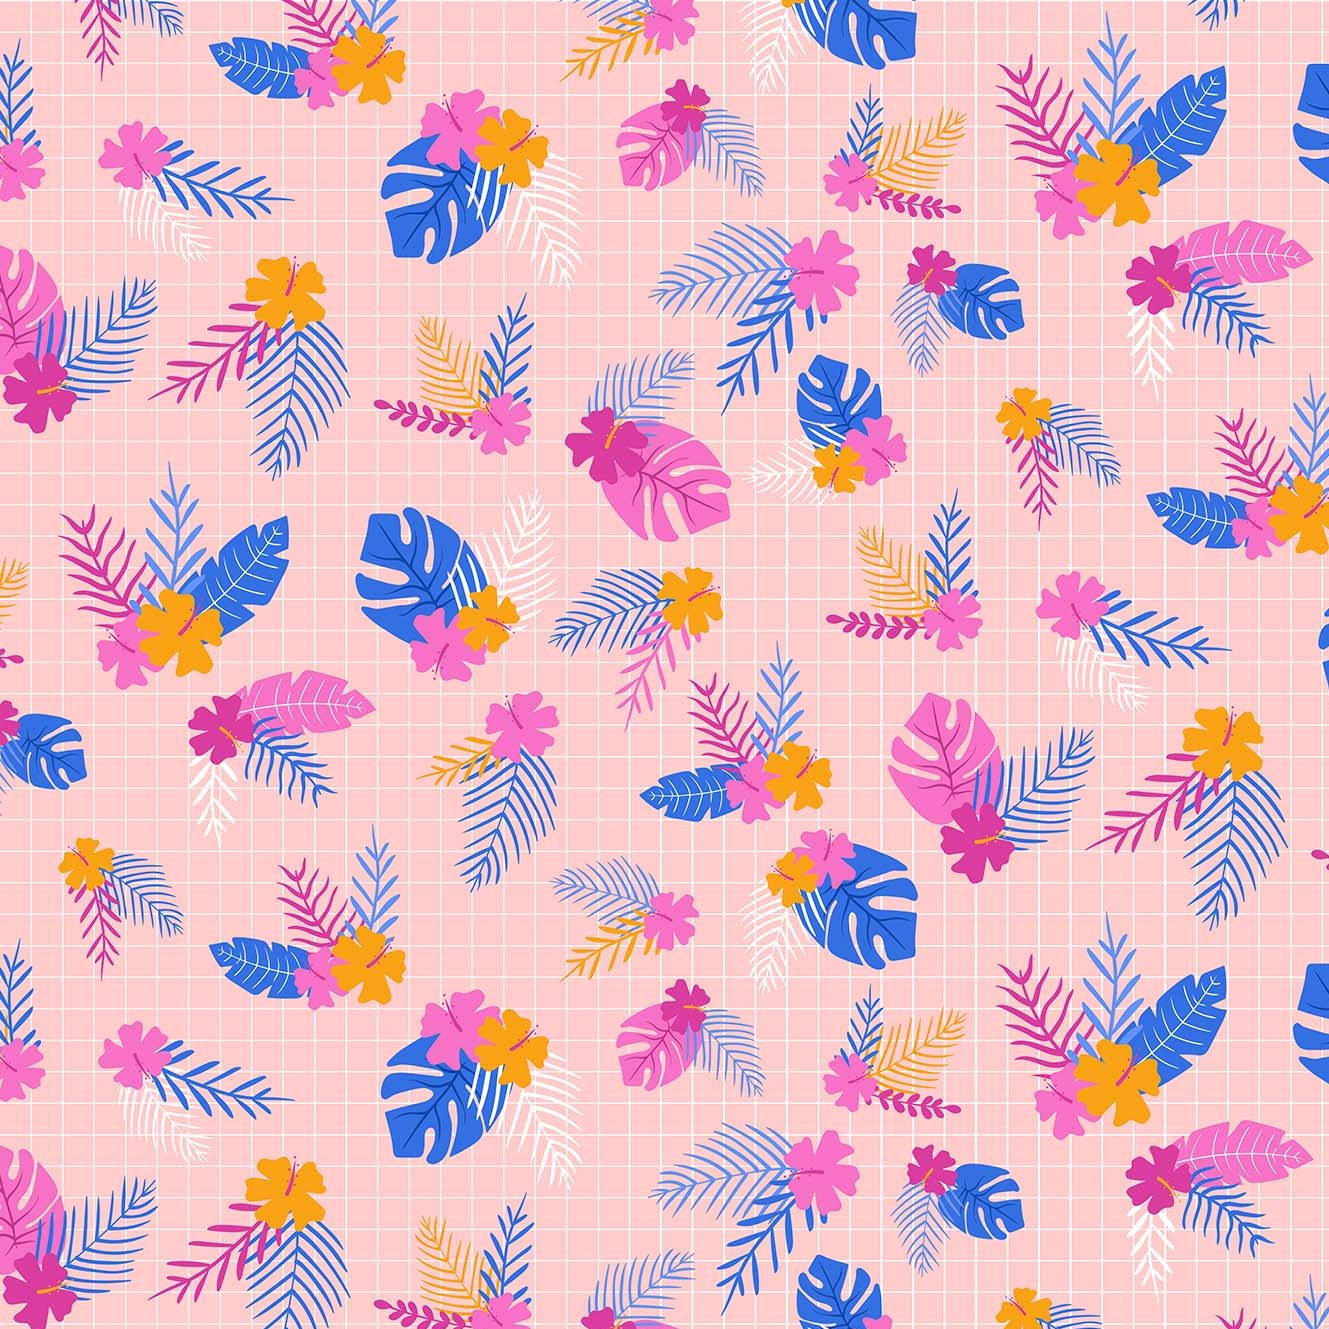 Jungle Leaves Pink from the Tropical Jammin' collection by Figo Fabrics, 100% cotton fabric